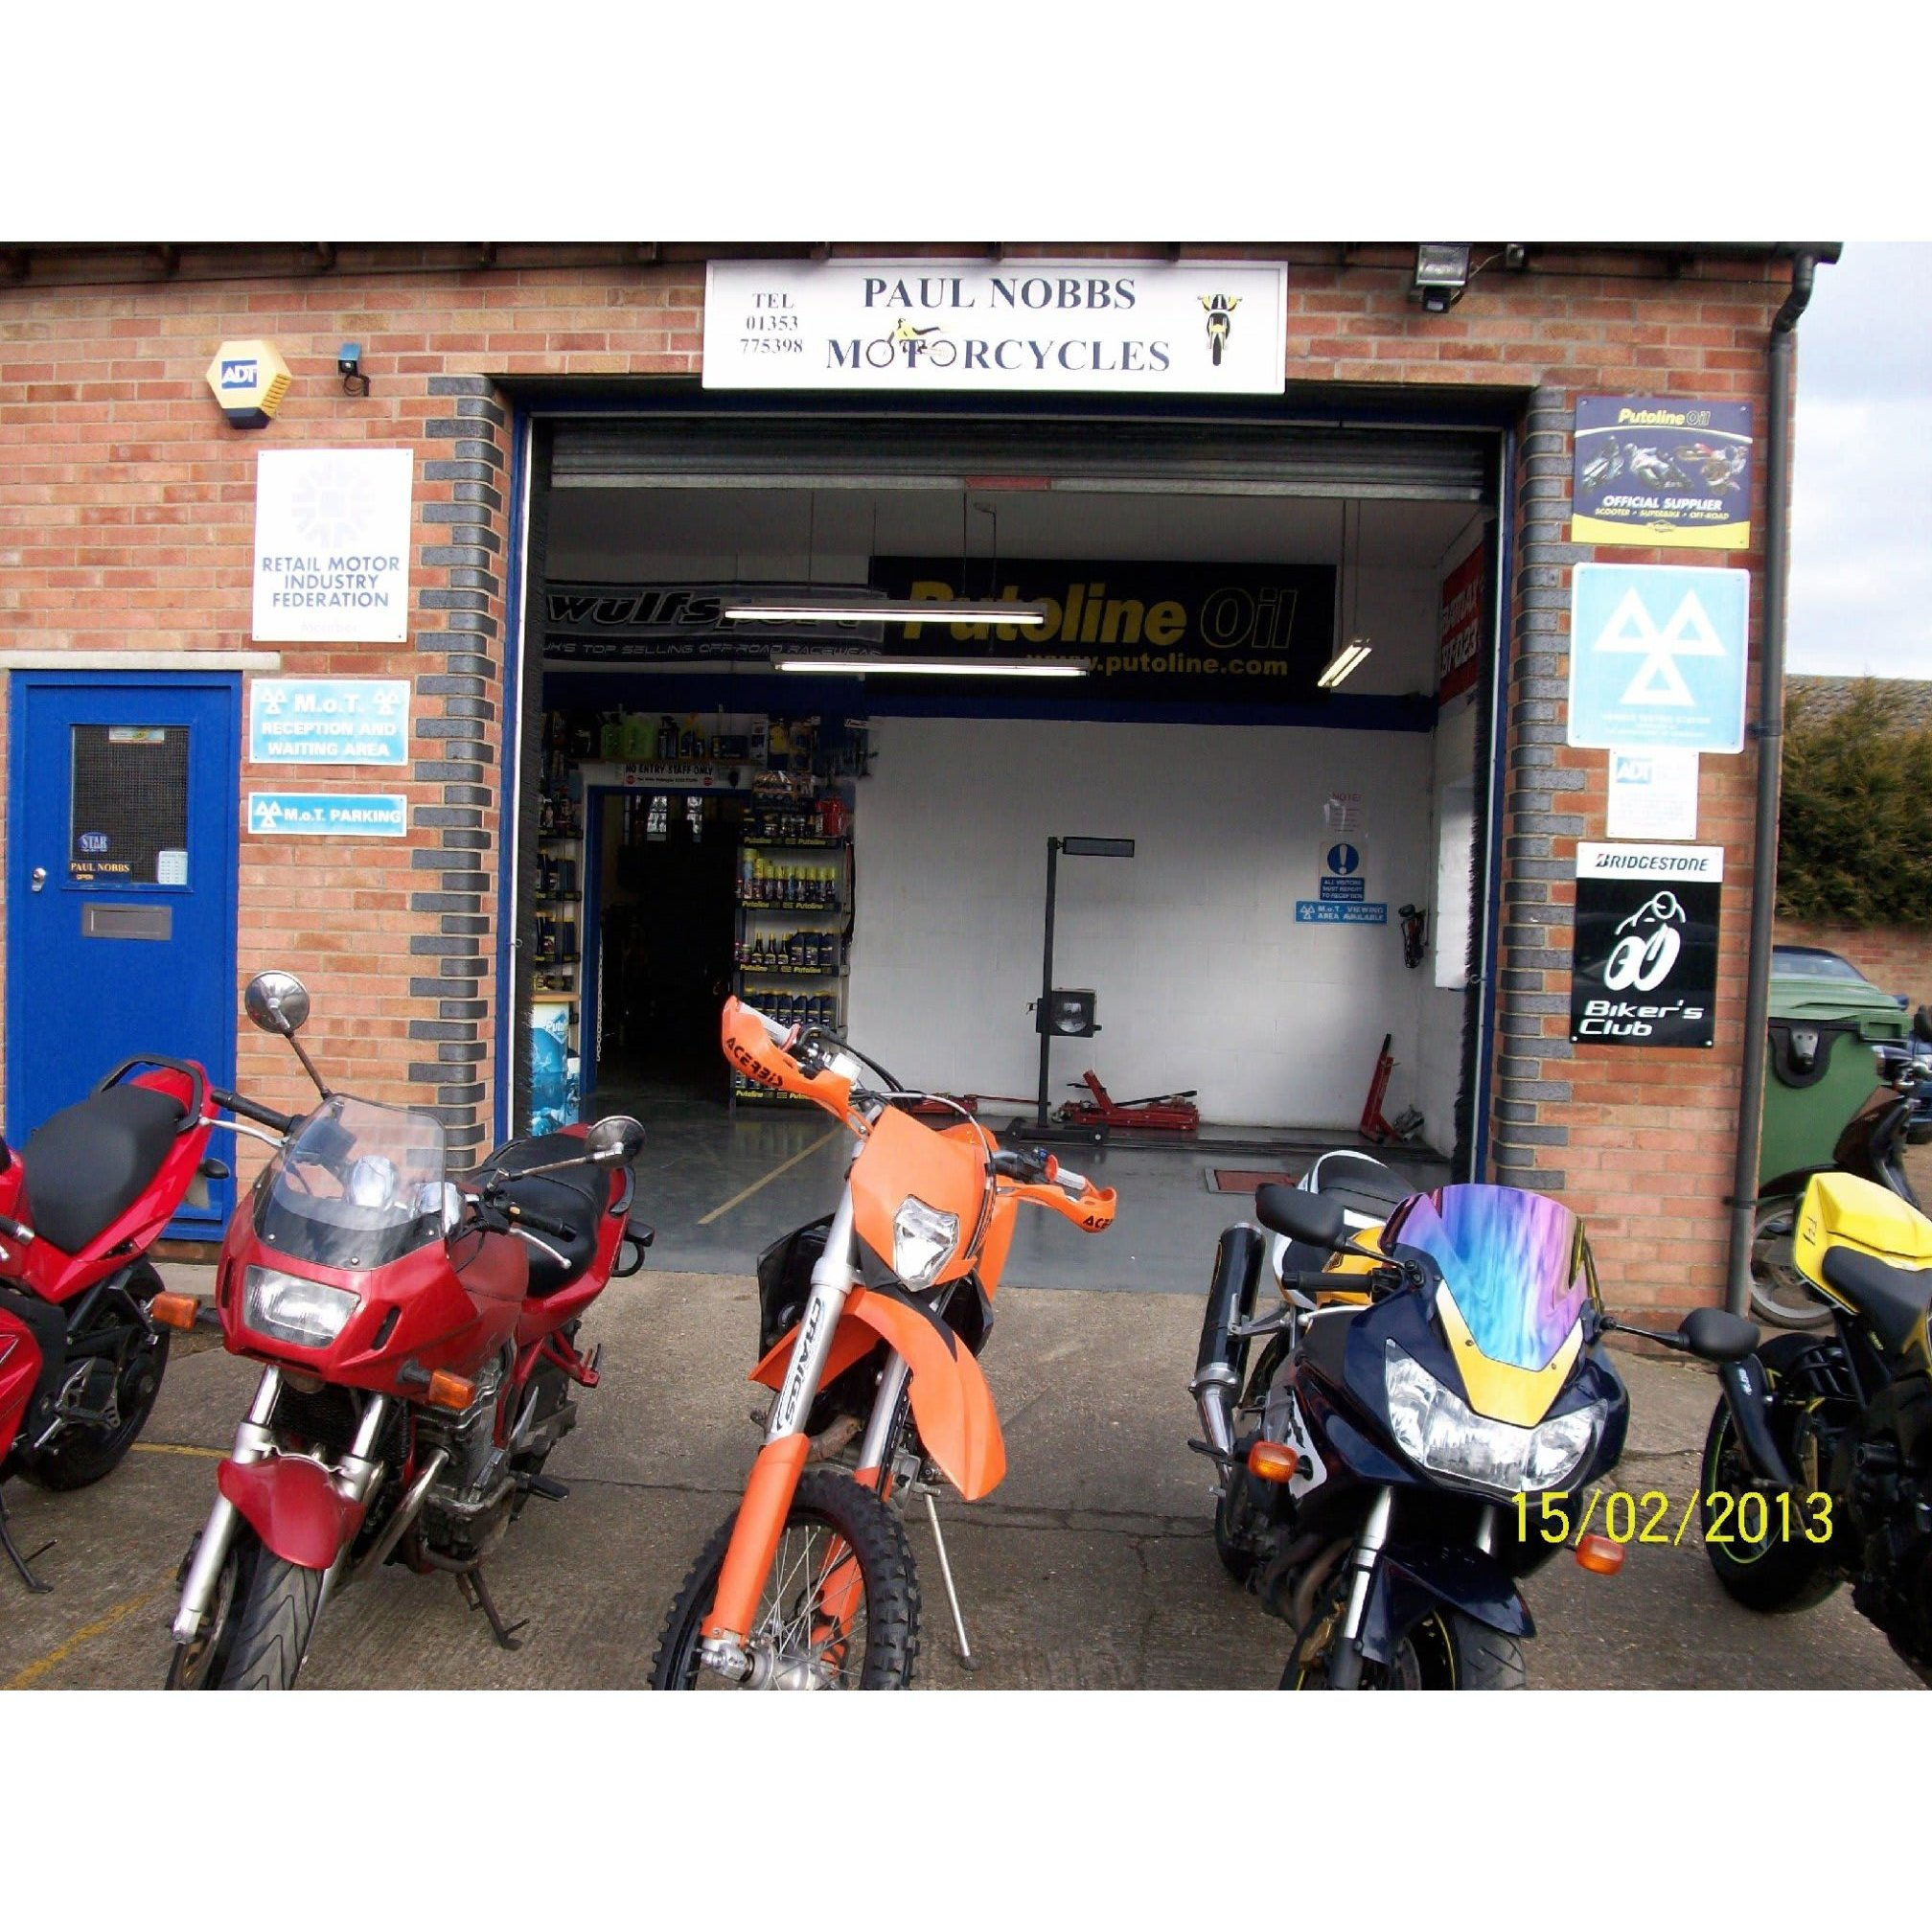 Paul Nobbs Motorcycles - Ely, Cambridgeshire CB6 2QD - 01353 775398 | ShowMeLocal.com